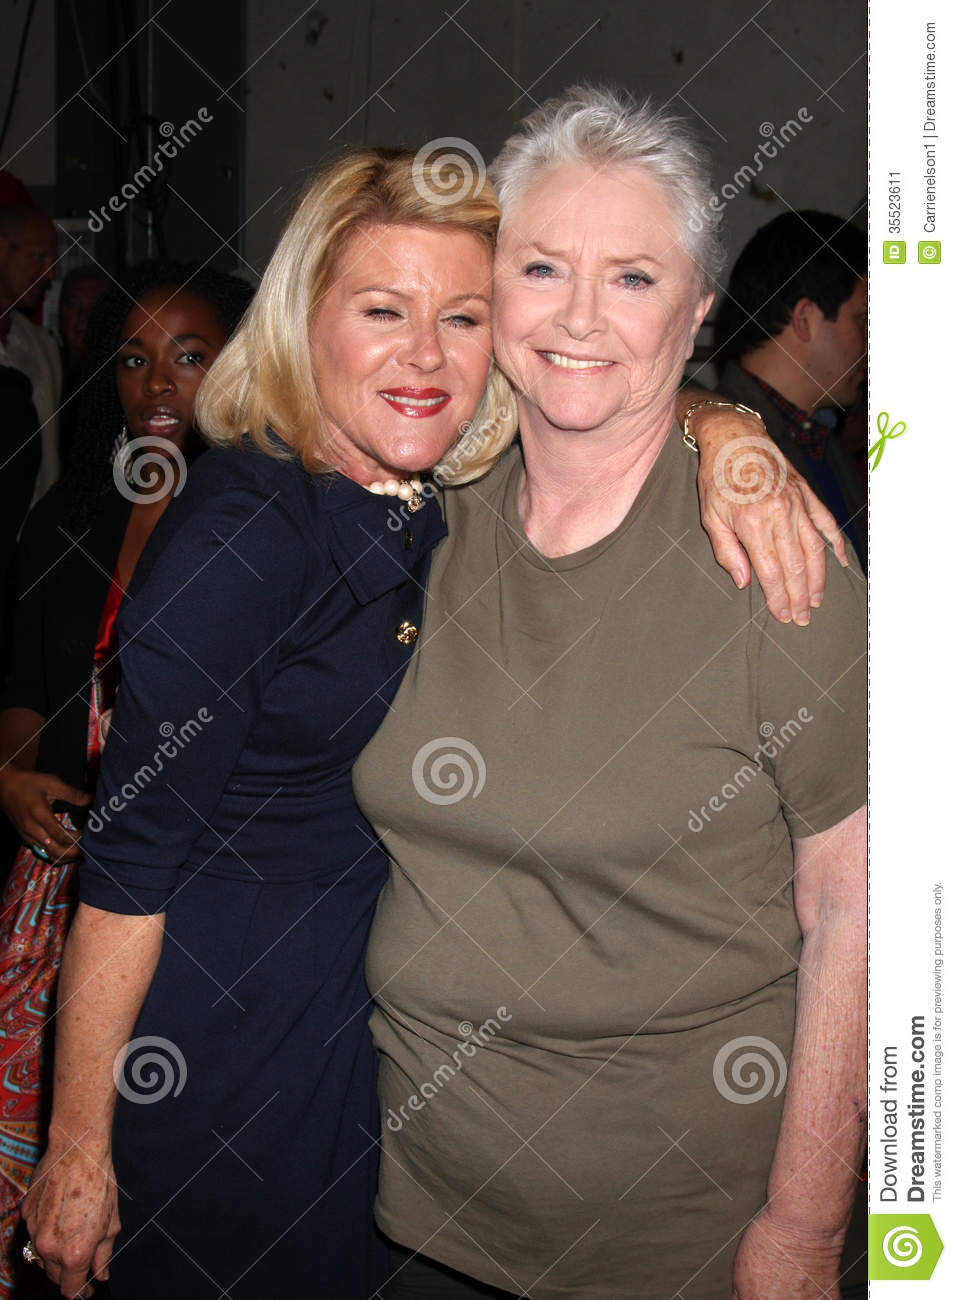 Susan flannery daughter